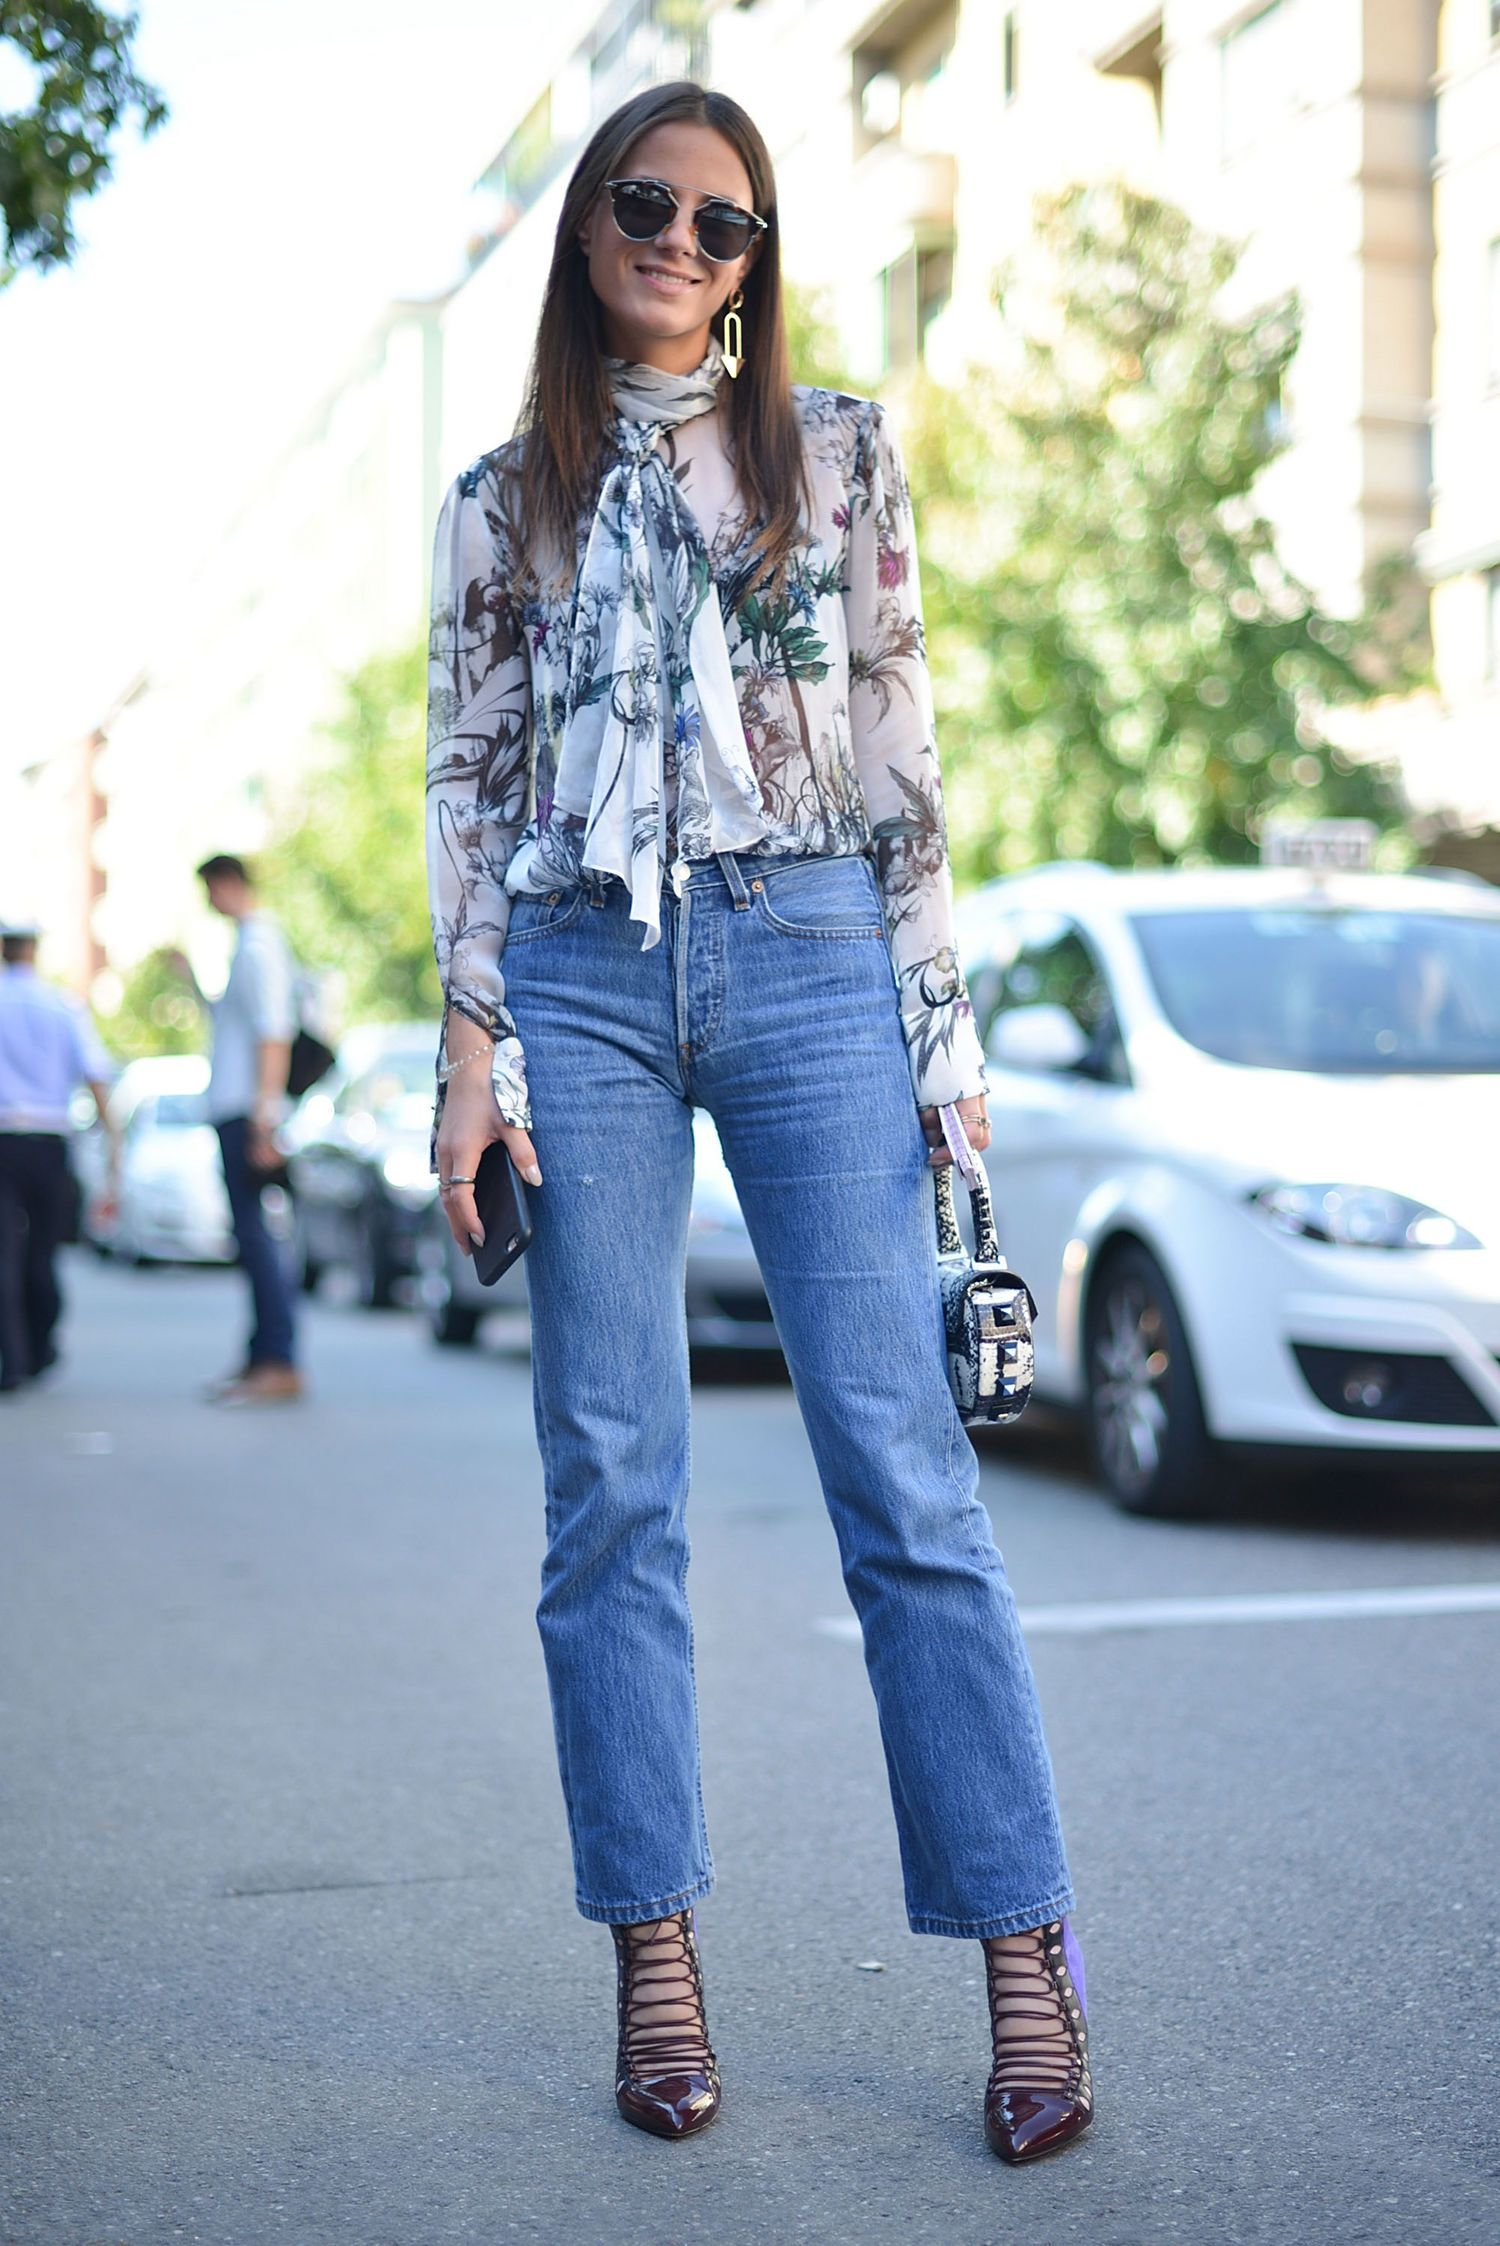 a3cea8bcb1a5 15 Cool New Ways to Wear Your Favorite  Jeans  fashion  style  denim  chic   fashionmagenet